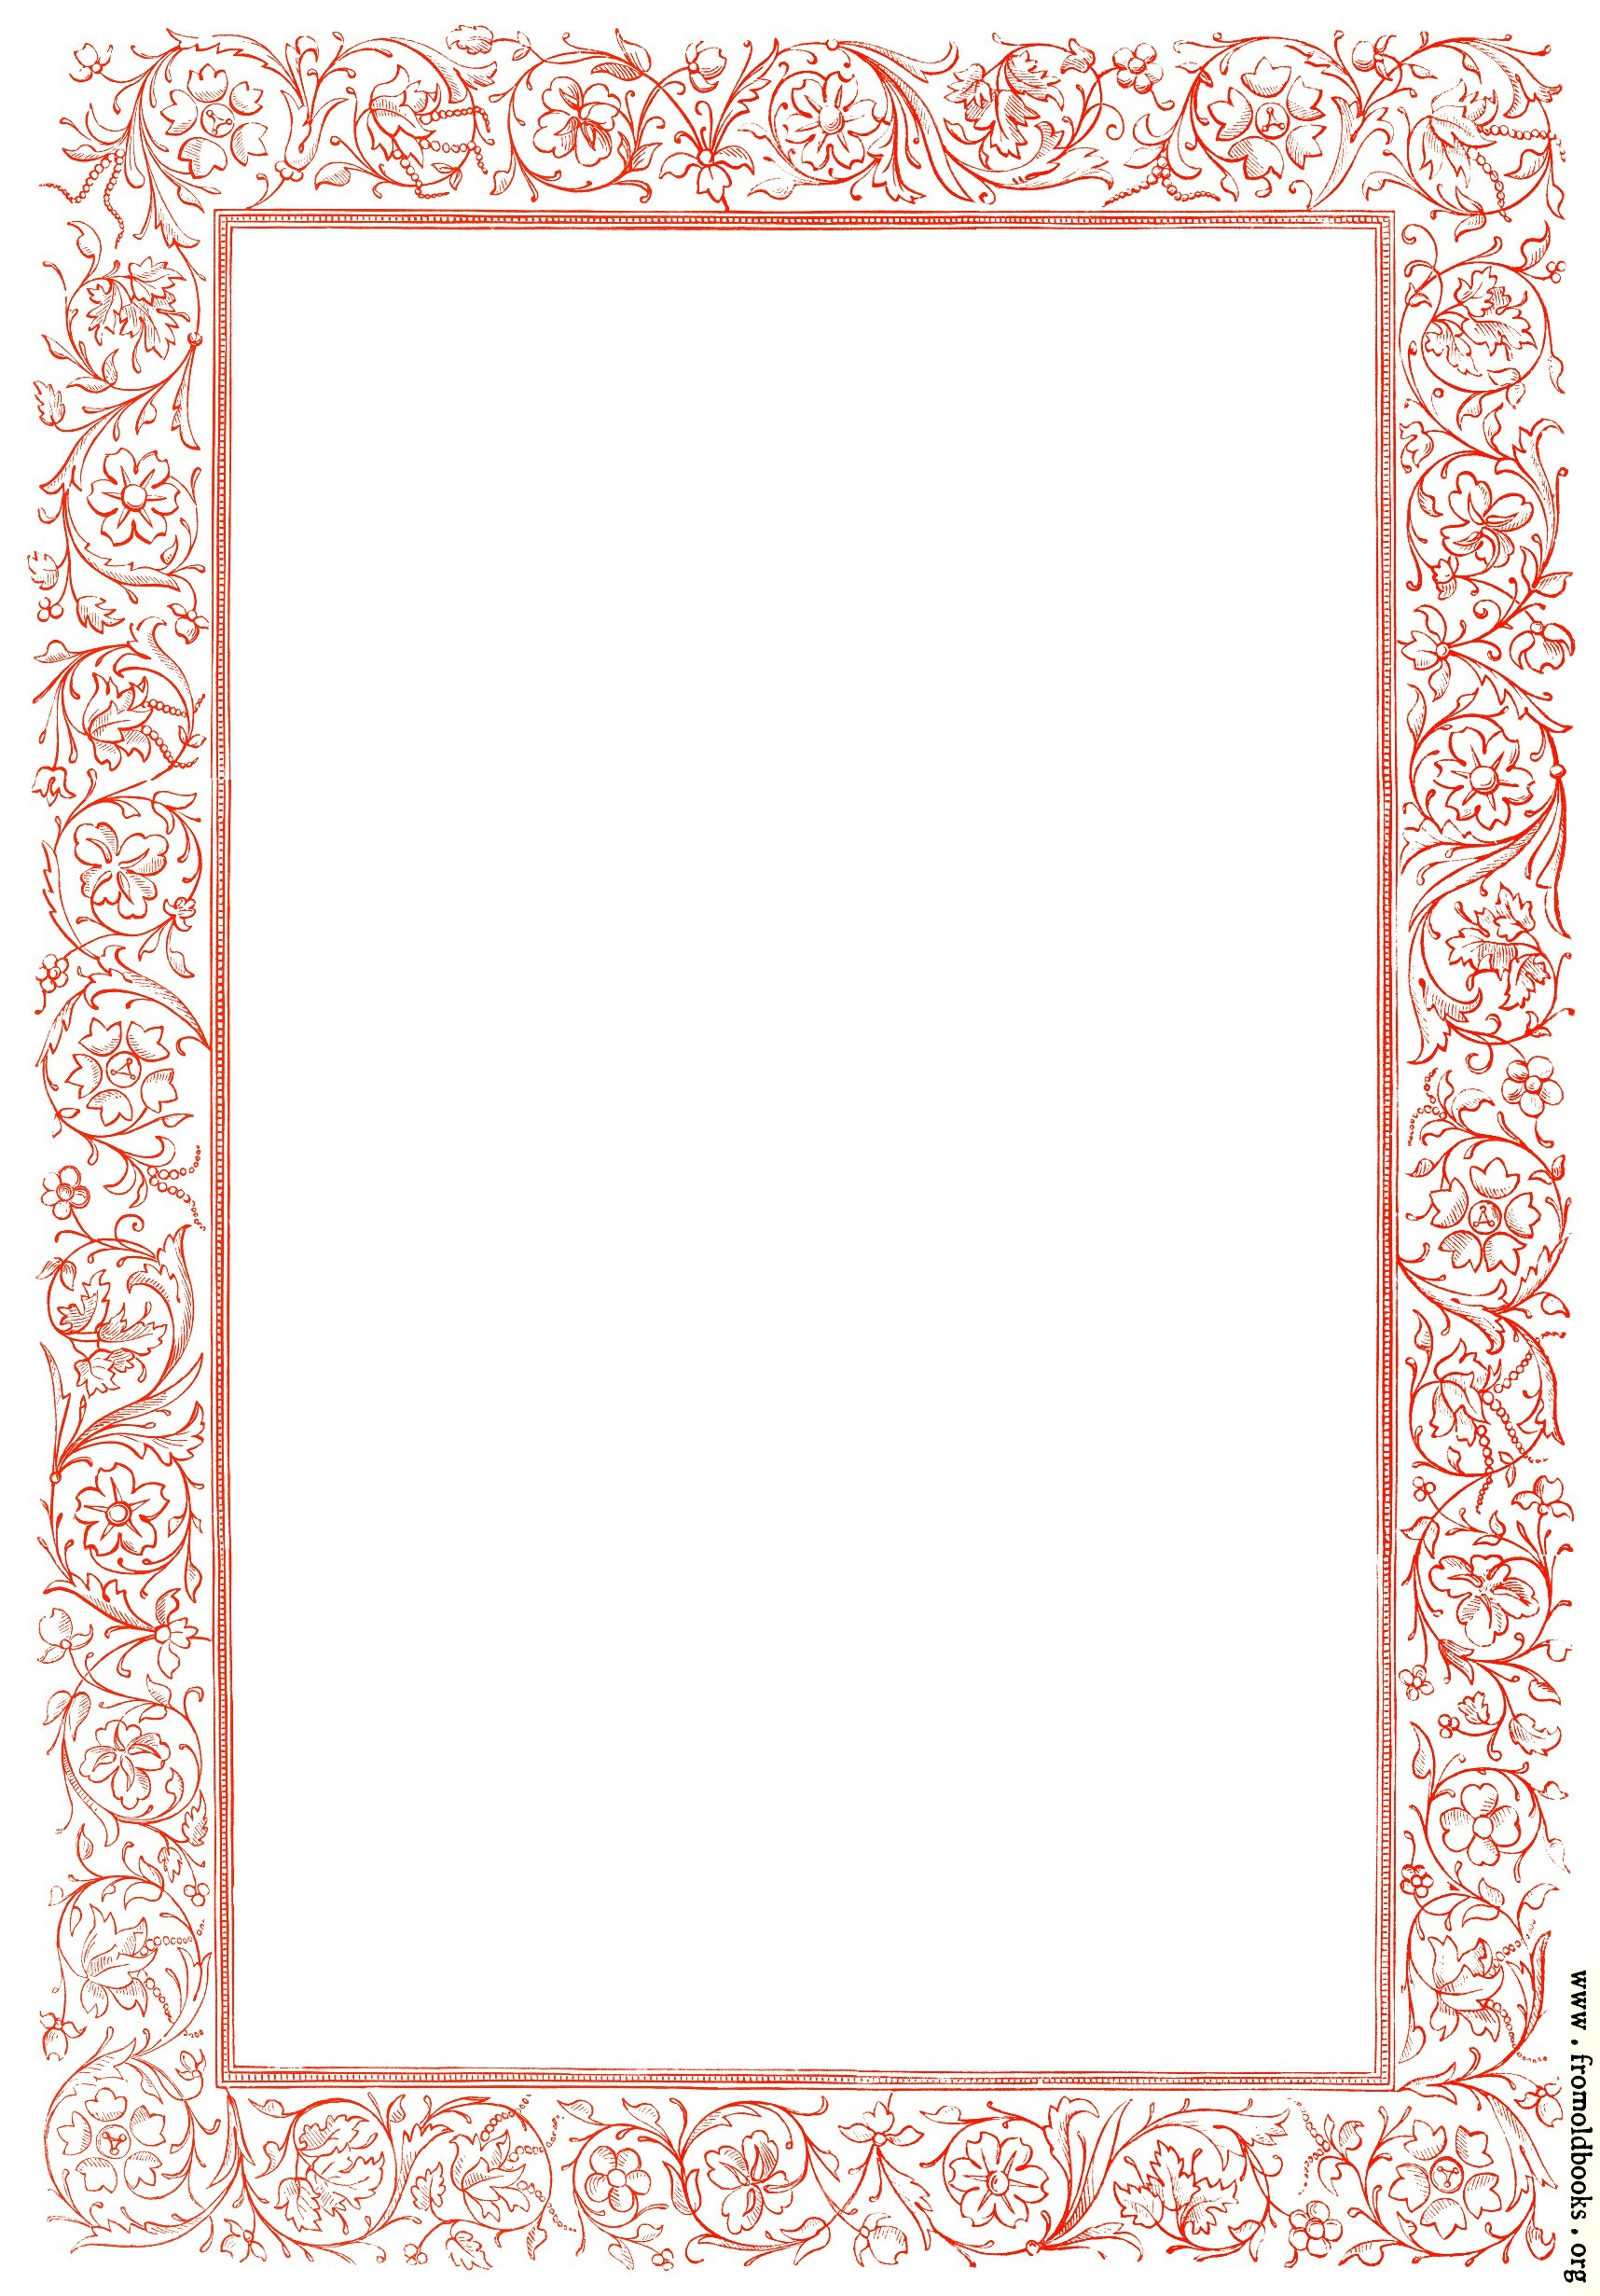 red box outline png. 1716x2462 847k jpg free download red box outline png t